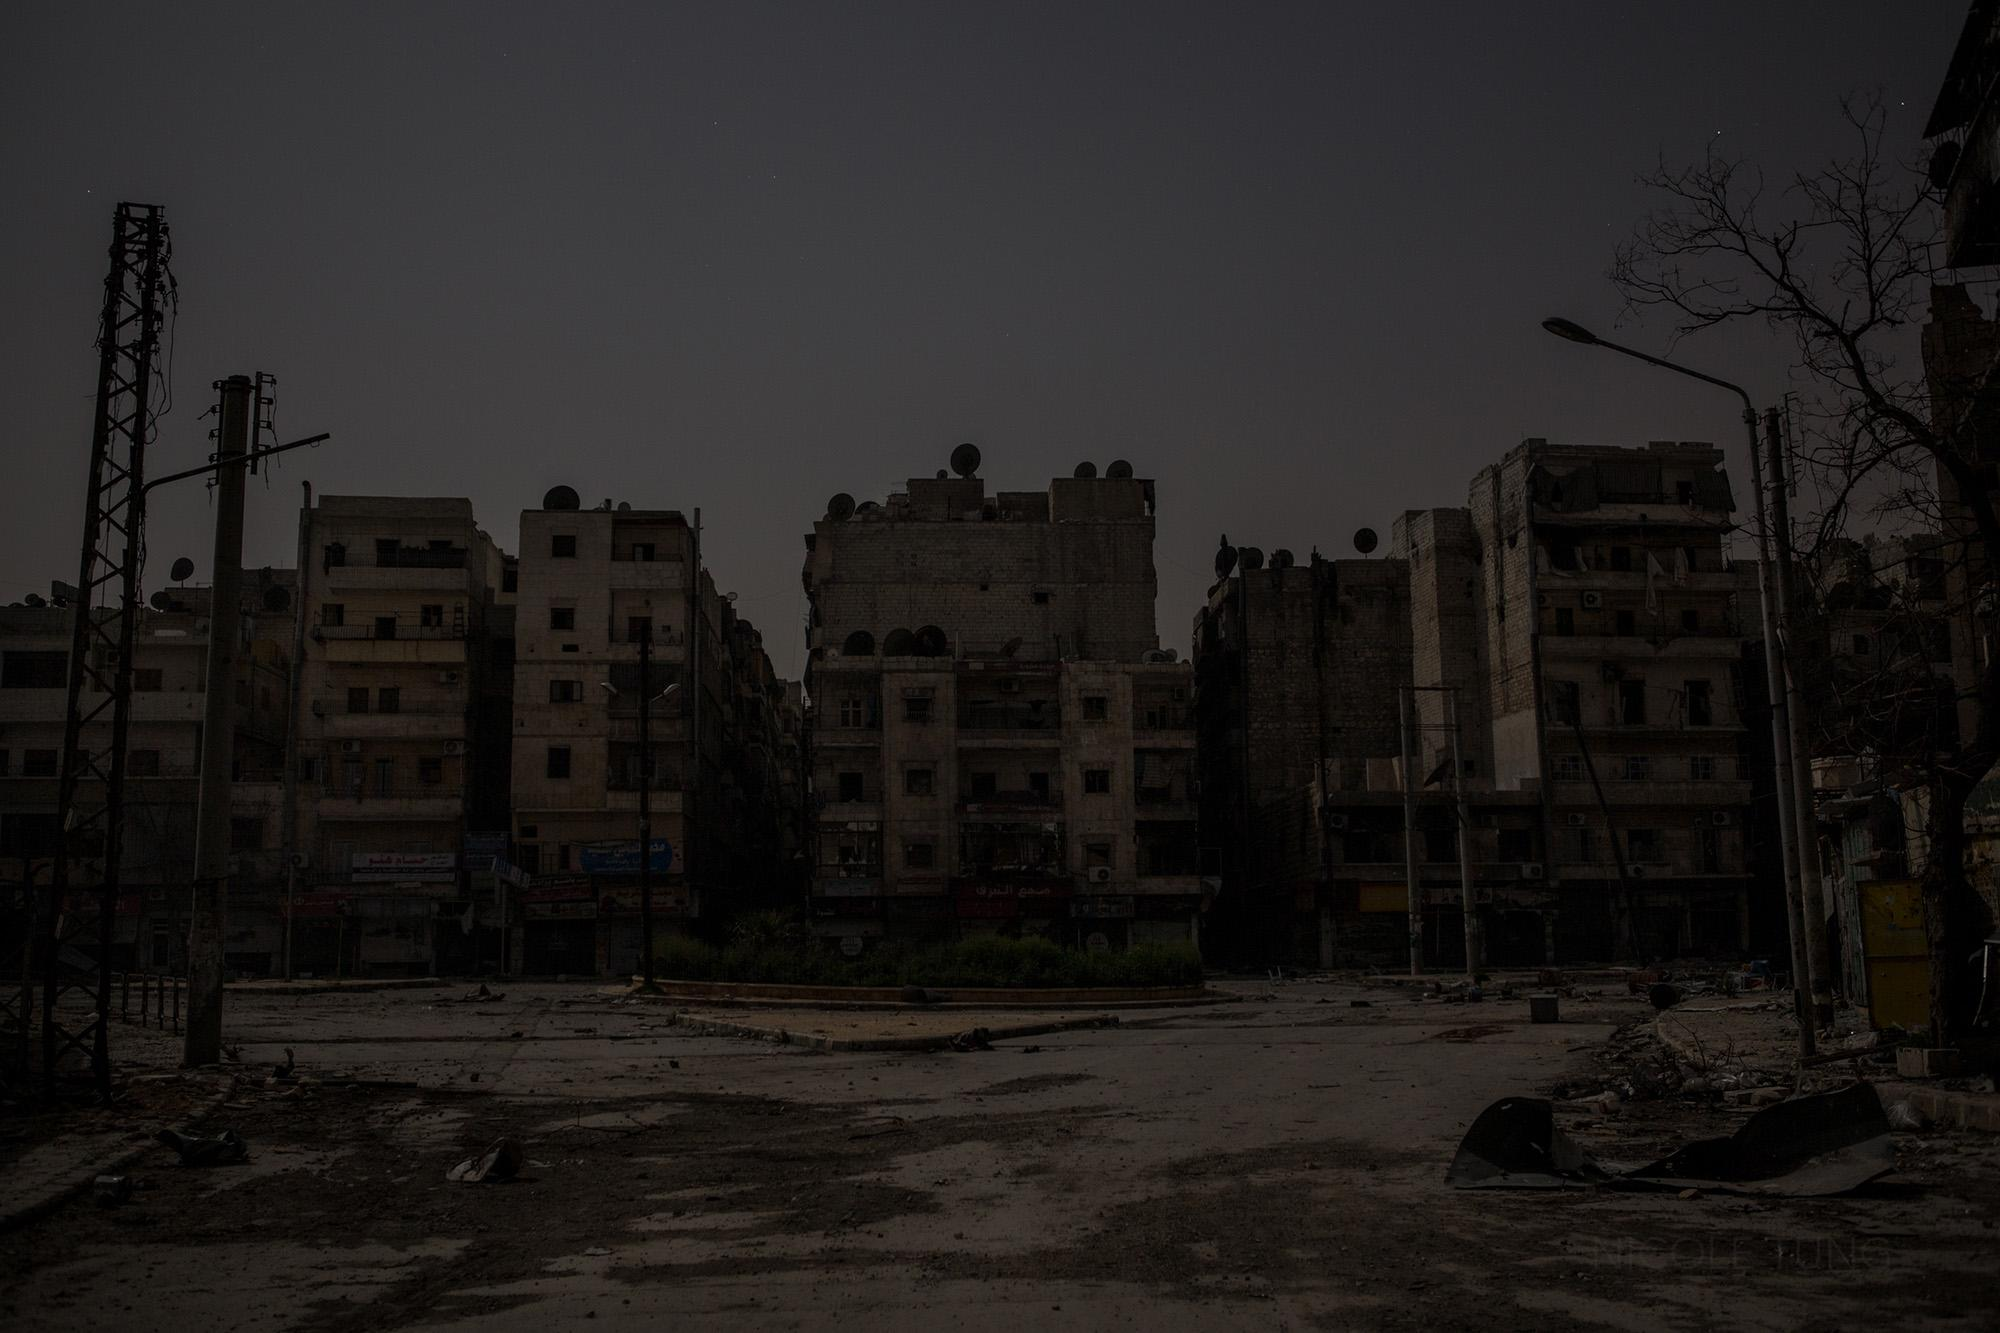 A view of a destroyed section of the Salaheddin neighborhood of Aleppo, Syria. March 2013.